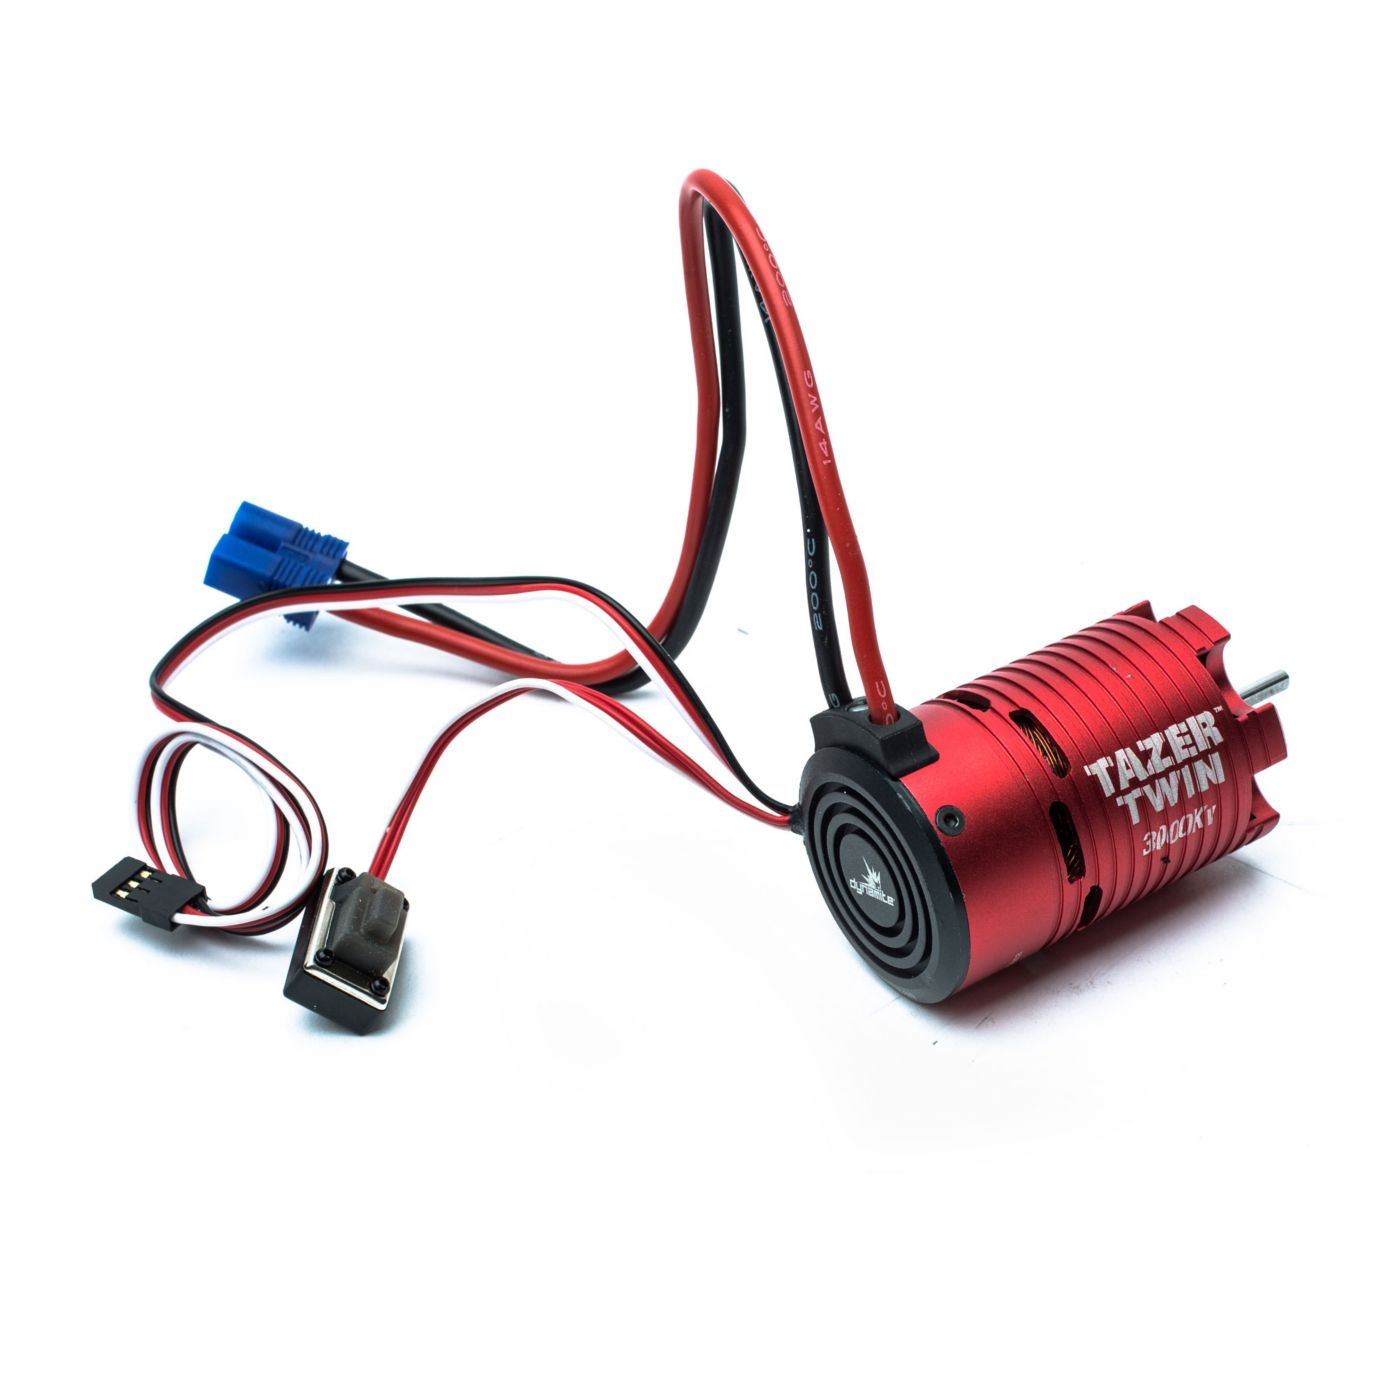 hight resolution of image for tazer twin 2 in 1 brushless motor esc combo 3000kv